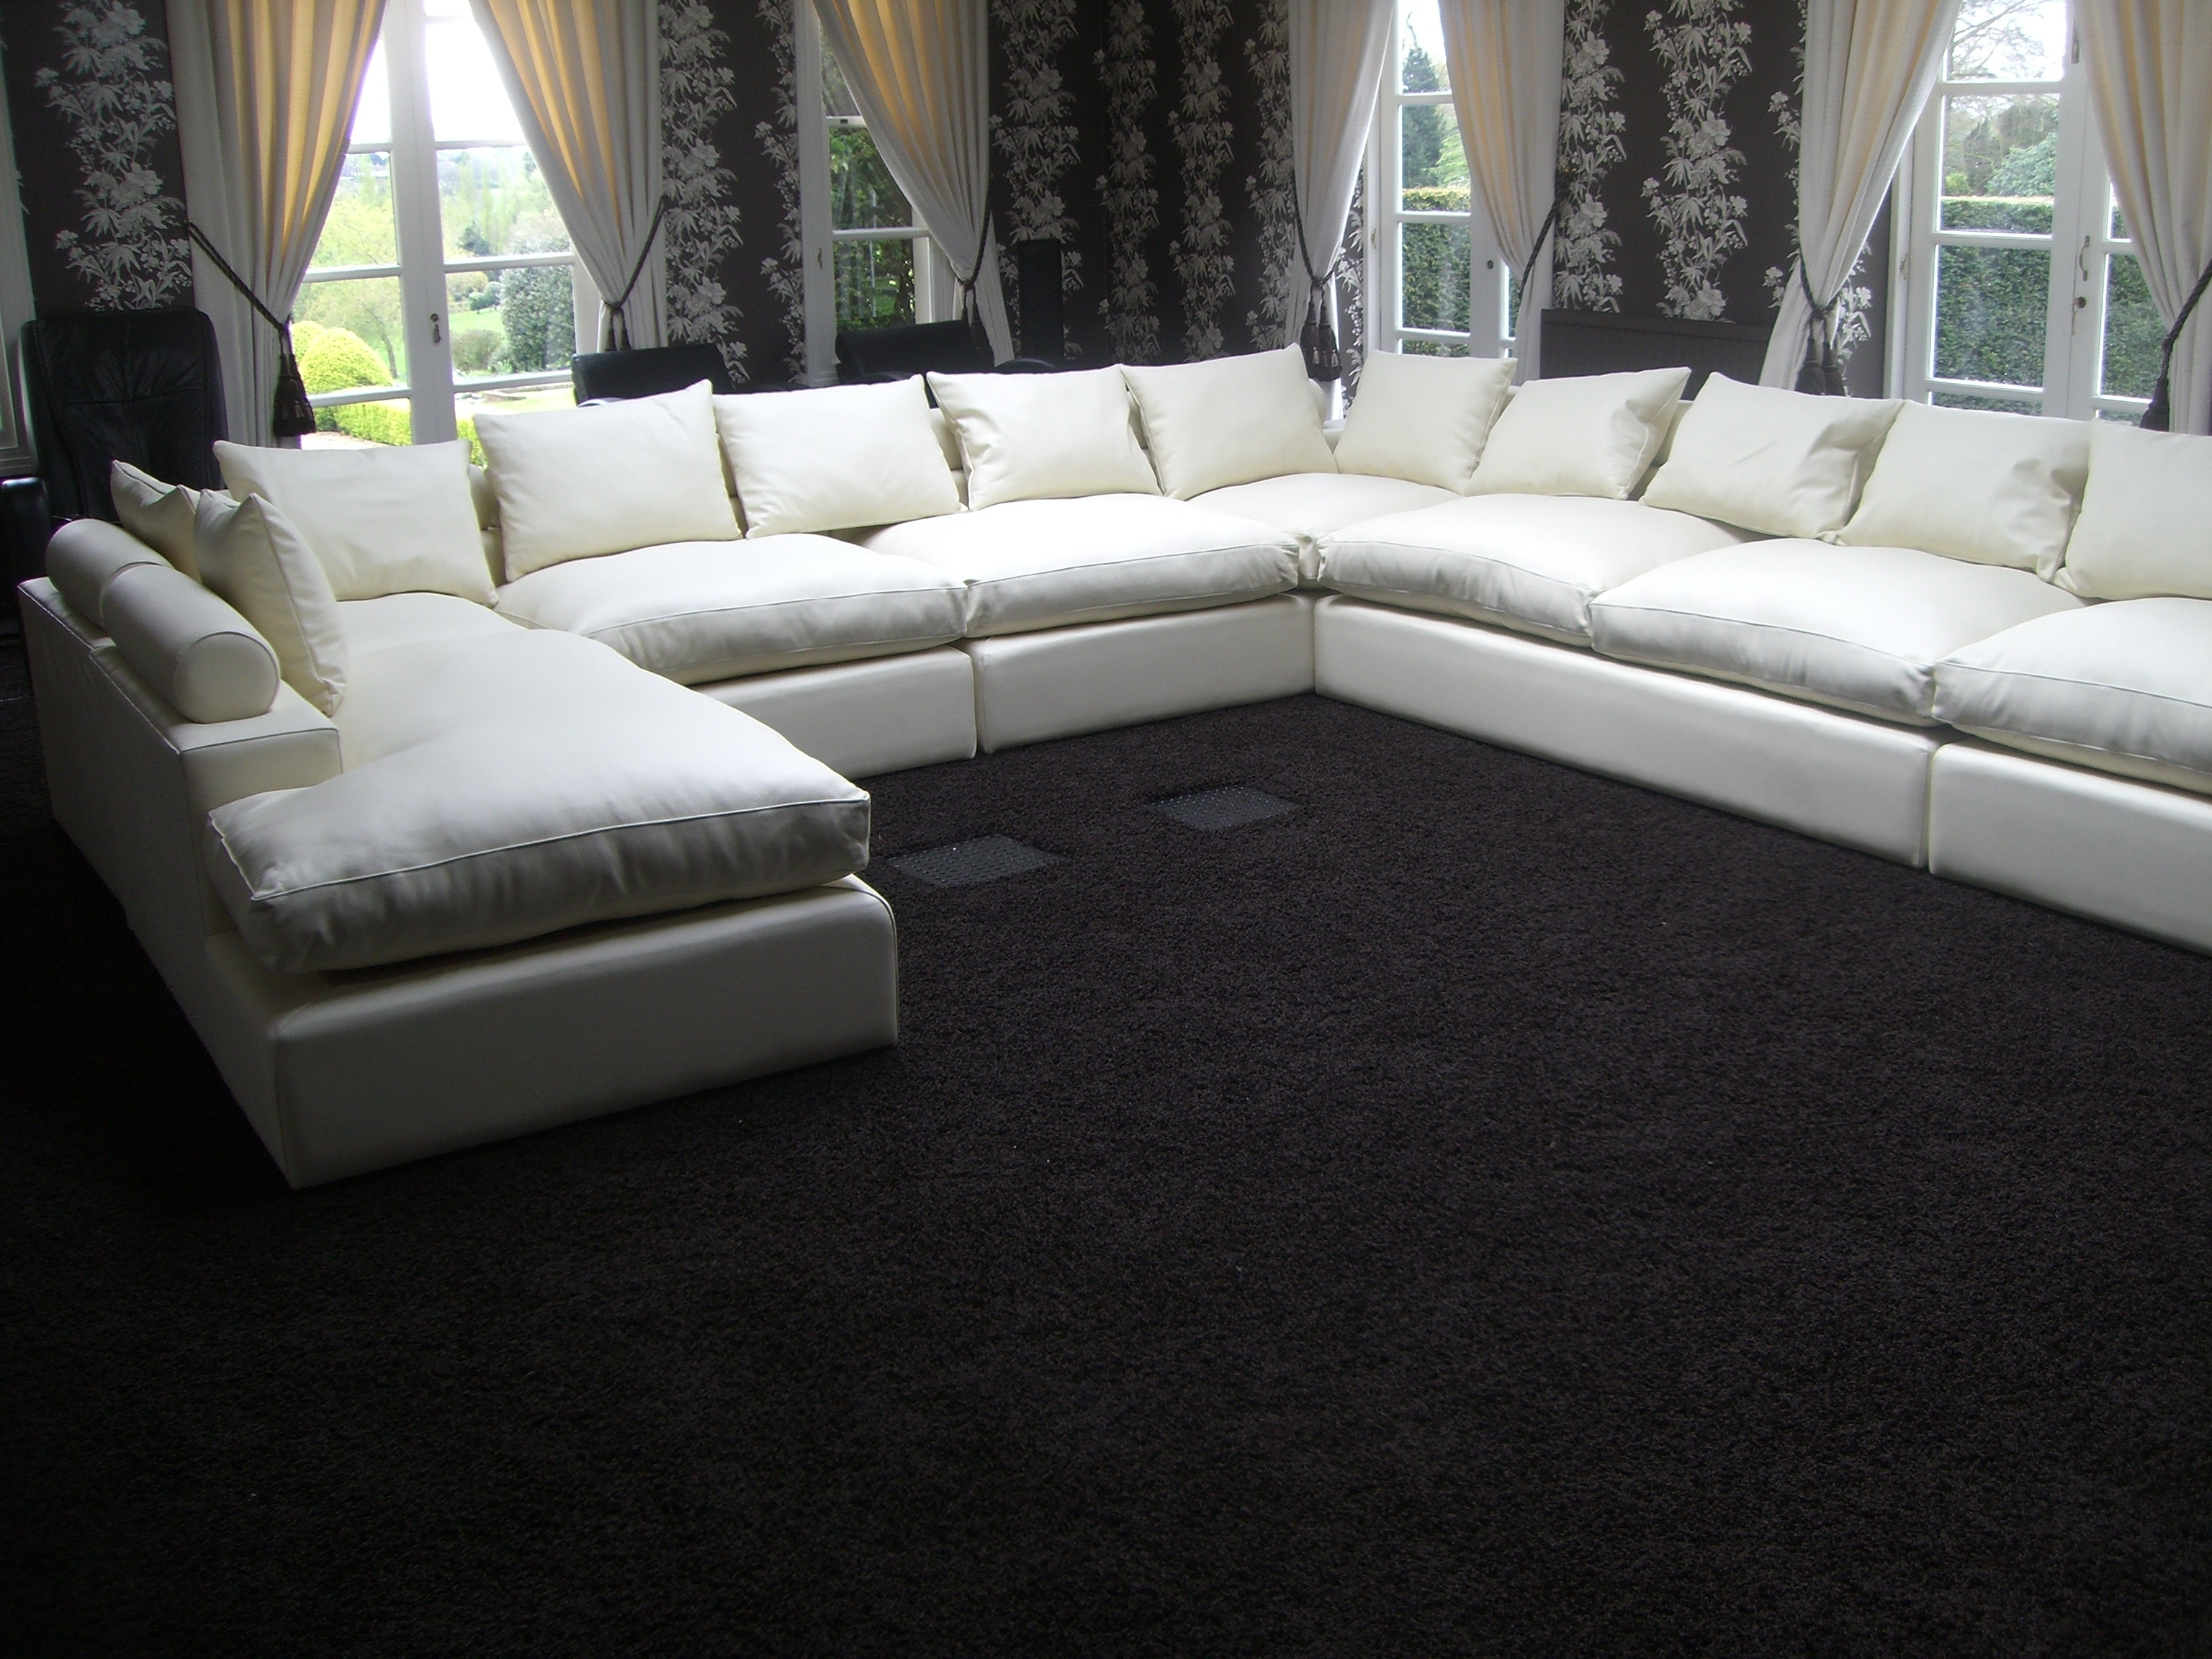 Large U Shaped Sofa – Fjellkjeden With Regard To Most Recent Huge U Shaped Sectionals (View 6 of 15)